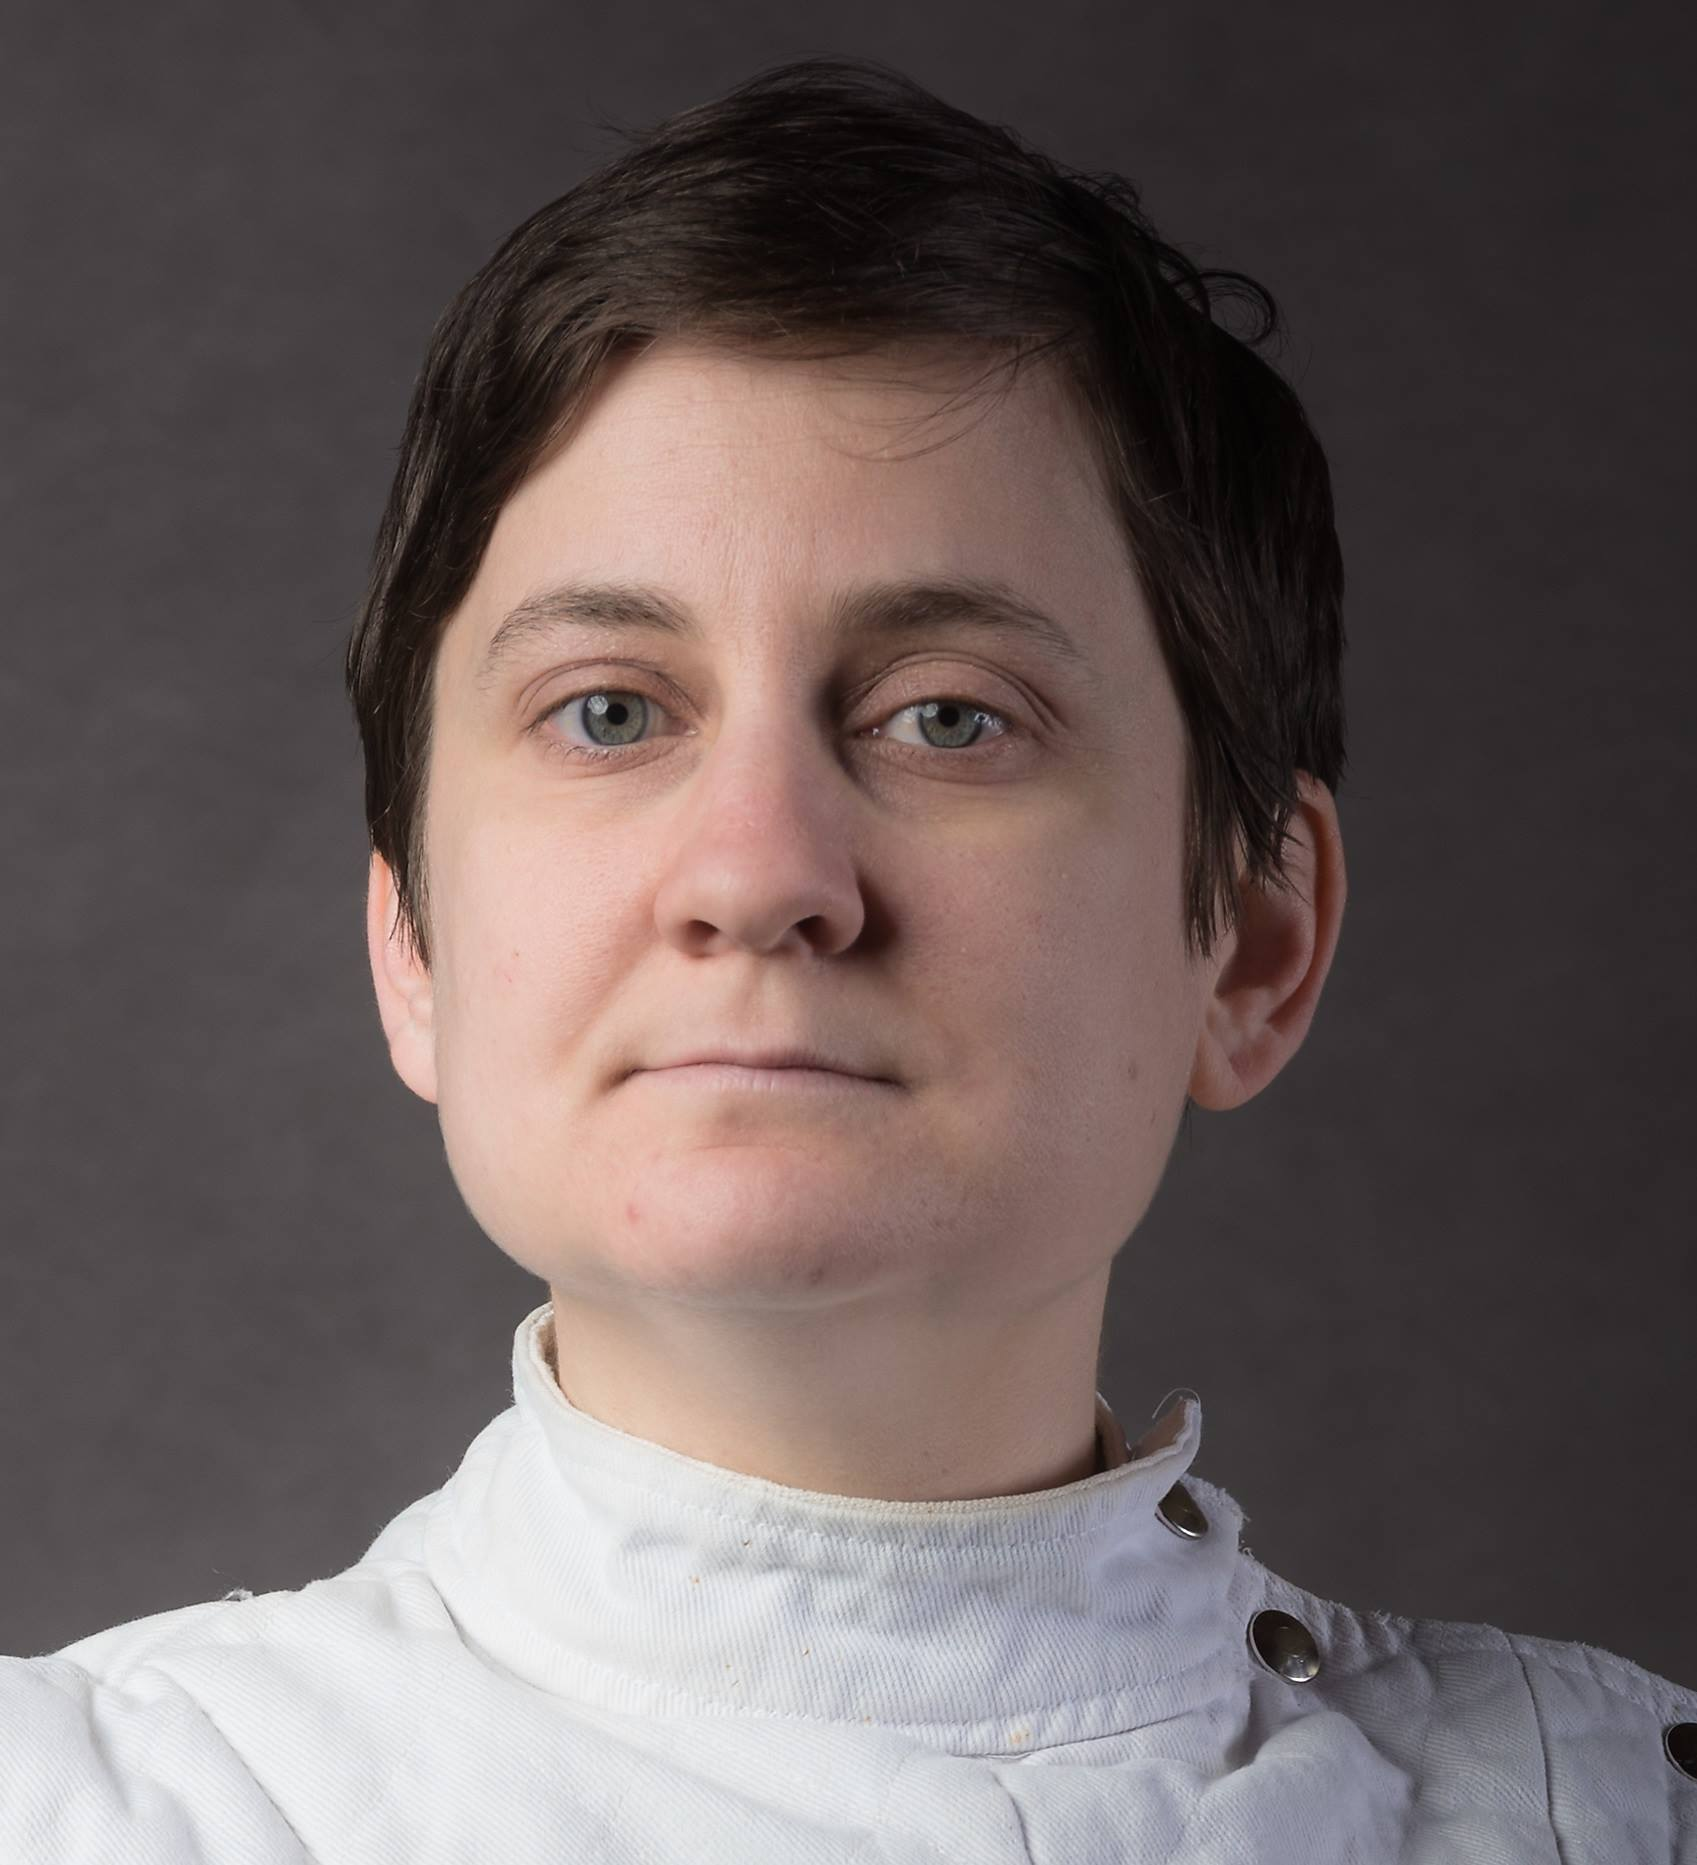 """Dori Coblentz - Dori Coblentz's (PhD Emory University, 2017) work as a fencing teacher is informed by a long Italian-American tradition. In 2017, she earned a Provost at Arms certification in foil, saber, and epee, with a historical concentration in Italian rapier, through Sonoma State University's Fencing Masters Certificate Program. Her most recent work has been within the historical fencing movement, where she is particularly interested in curriculum development. She has published on this topic in a 2018 training manual, Fundamentals of Italian Rapier: A Modern Manual for Teachers and Students of Historical Fencing, which she co-authored with David Coblentz. She is the co-founder of the Decatur School of Arms, which offers weekly classes for adult learners in rapier fencing. """"Taking Your Time in Italian Rapier Fencing""""In everyday speech, to"""